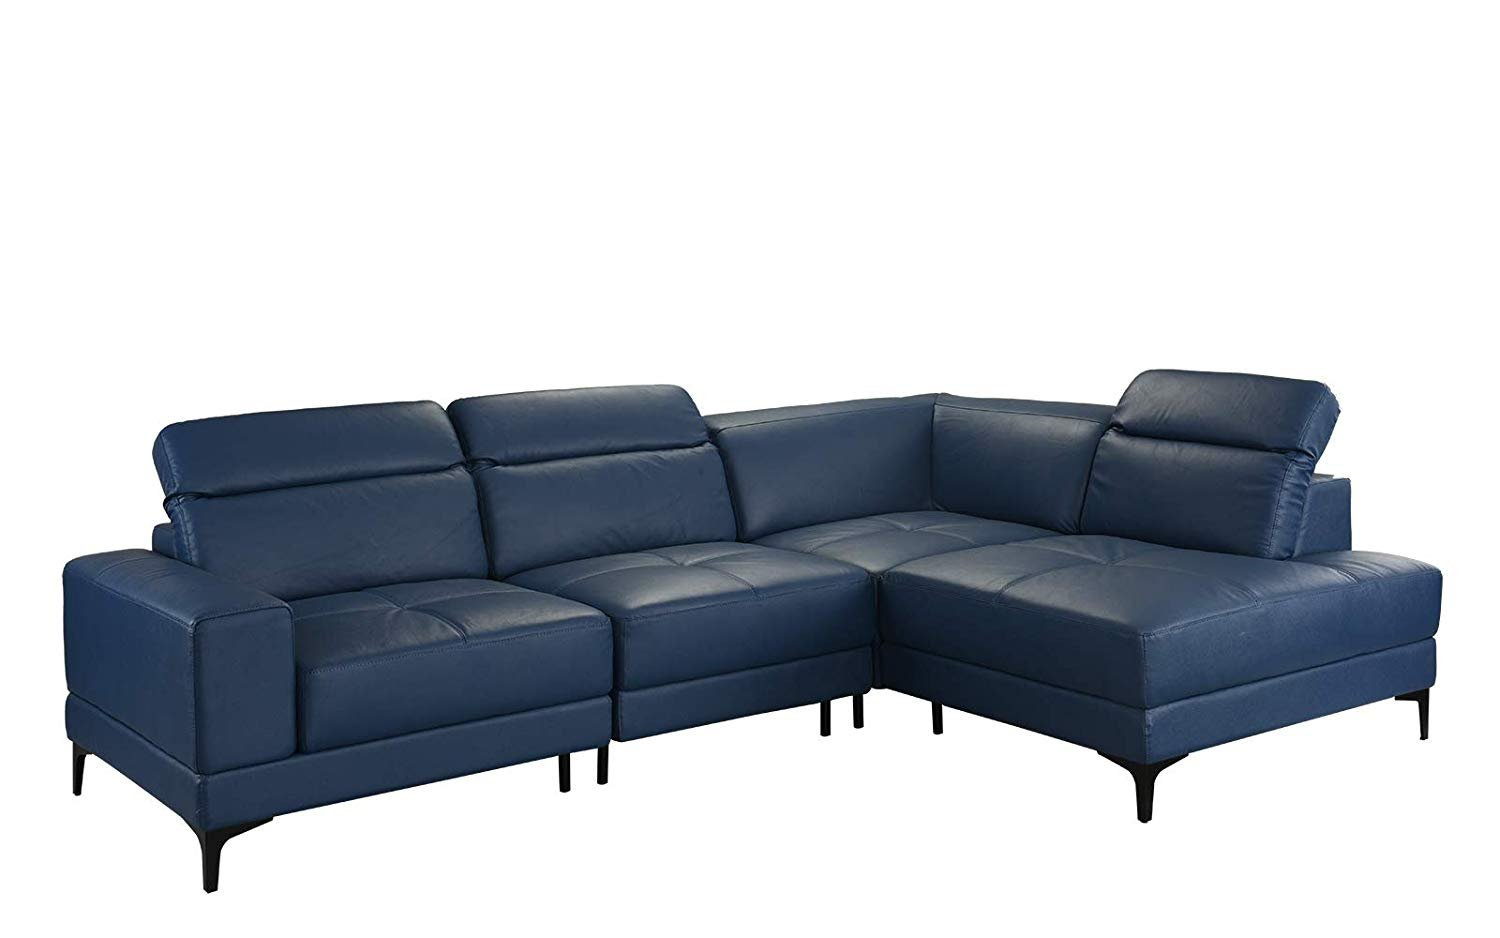 Large Modern Leather Sectional Sofa, Living Room L-Shape Couch (Grey)